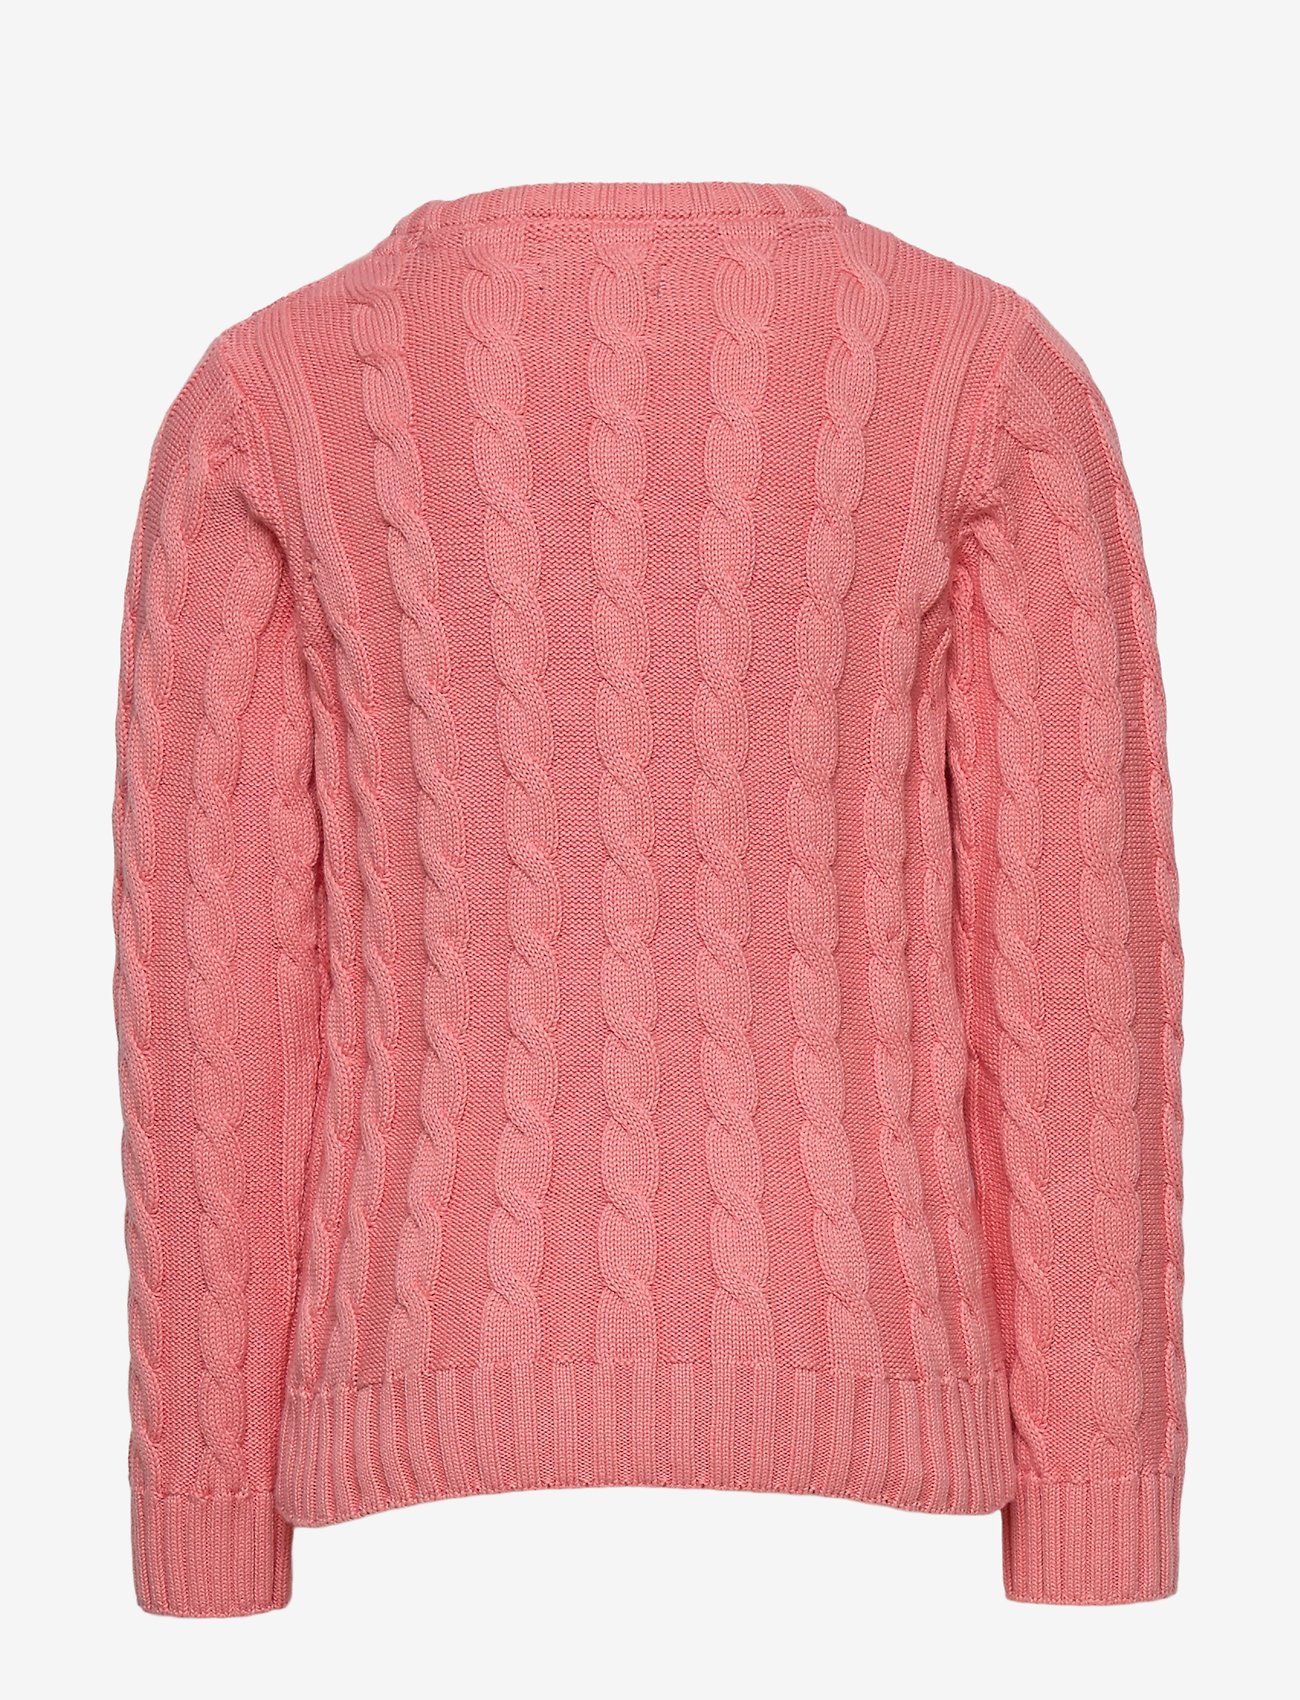 GANT - COTTON CABLE CREW - strickmode - strawberry pink - 1